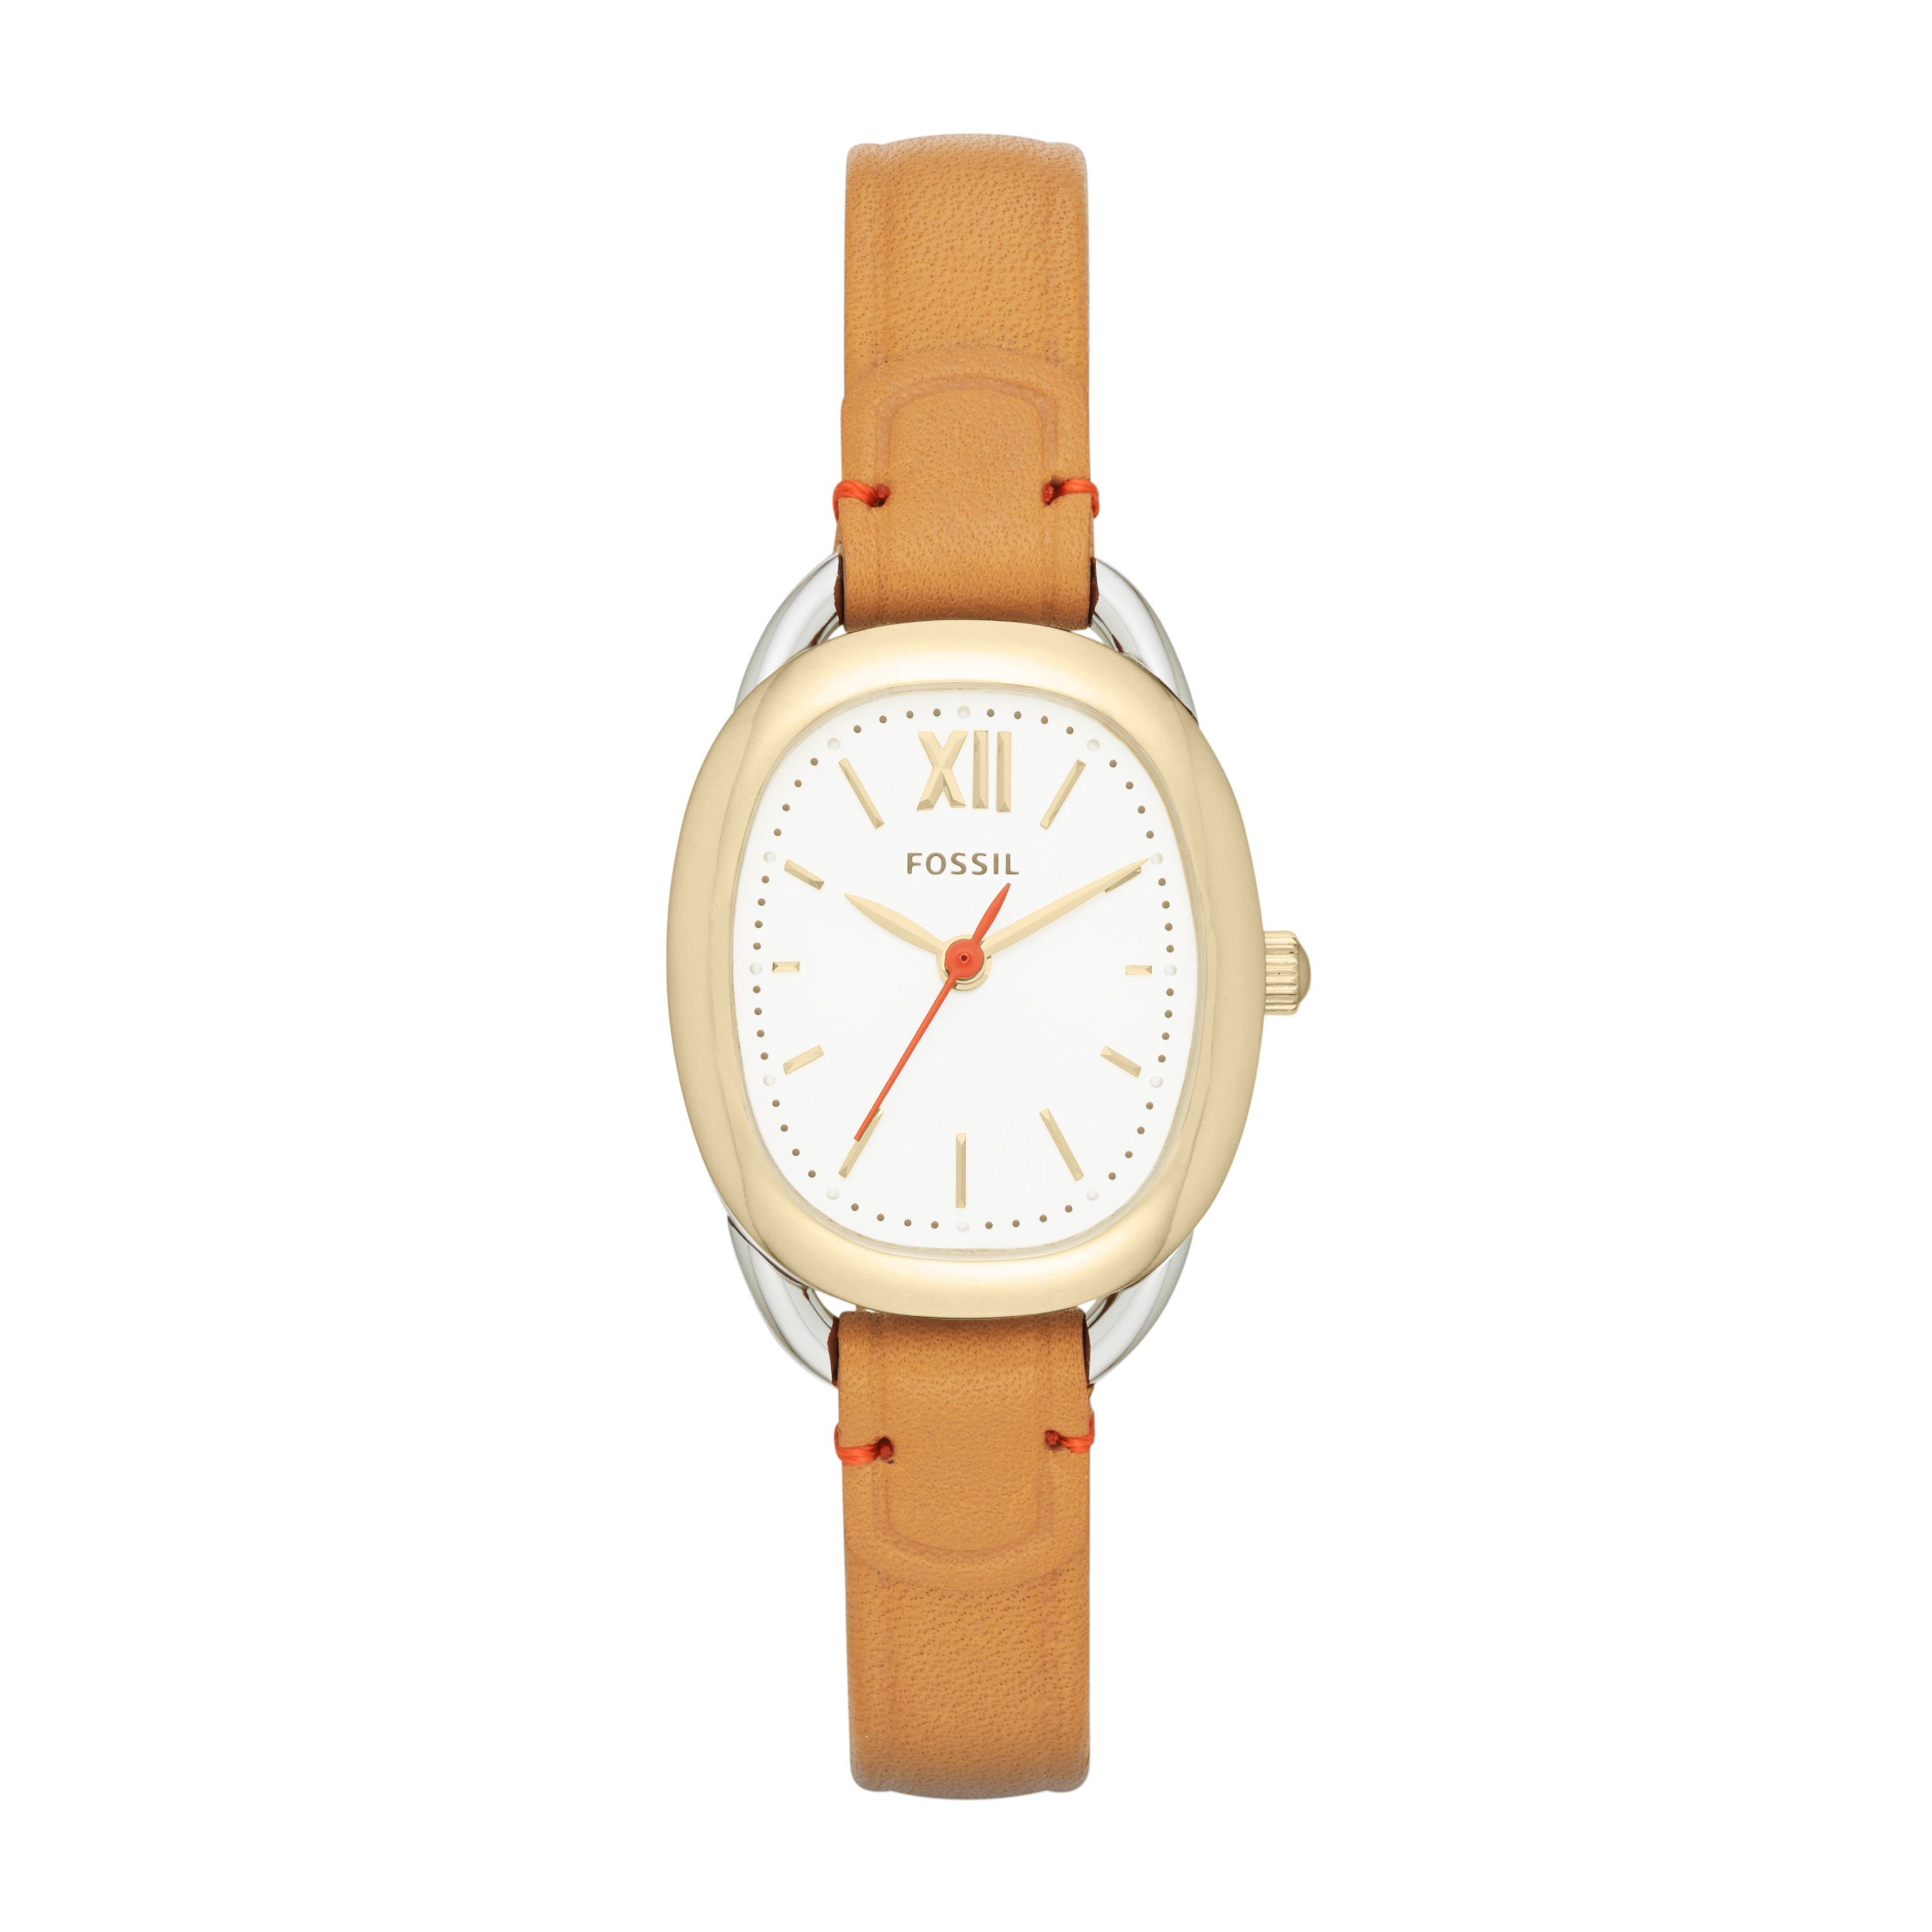 ES3558 Sculptor ladies oval tan leather watch